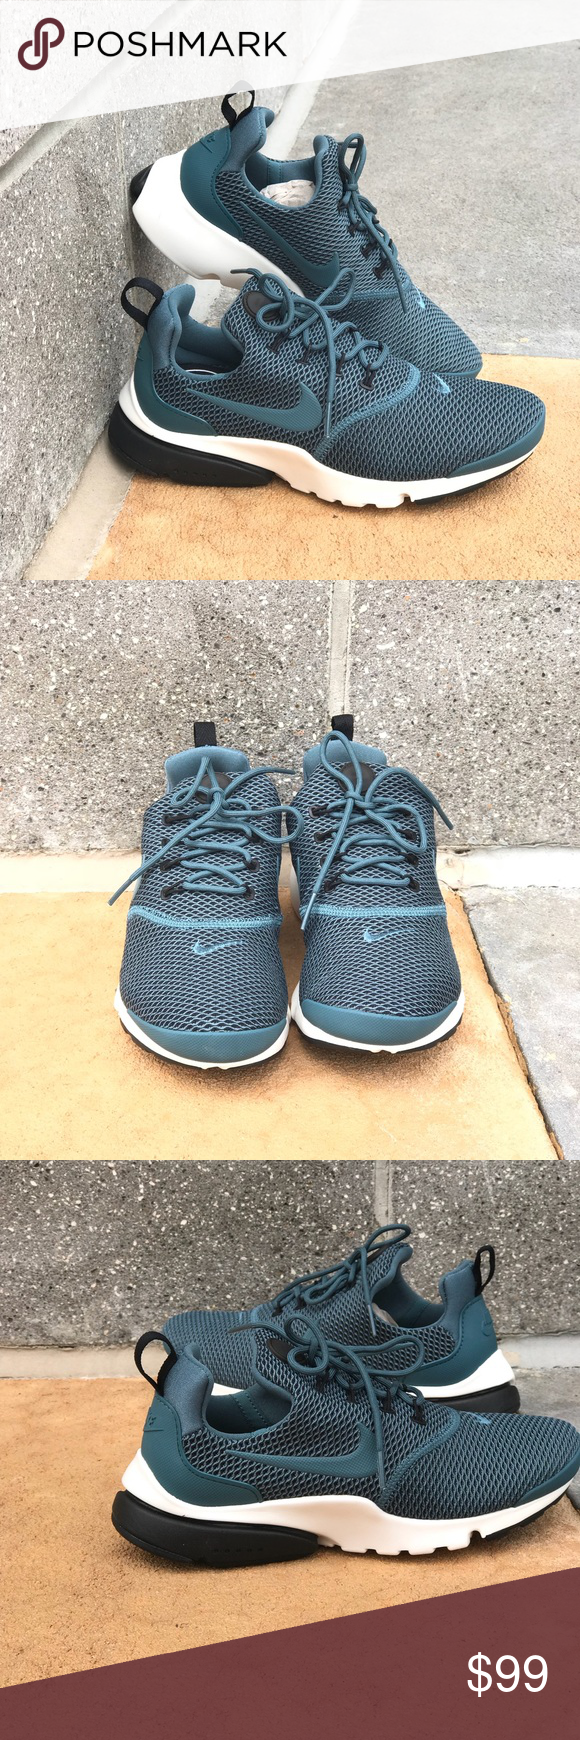 b82708d1876efb Spotted while shopping on Poshmark  NWT Nike Presto Ultra SE Iced Jade WMNS!